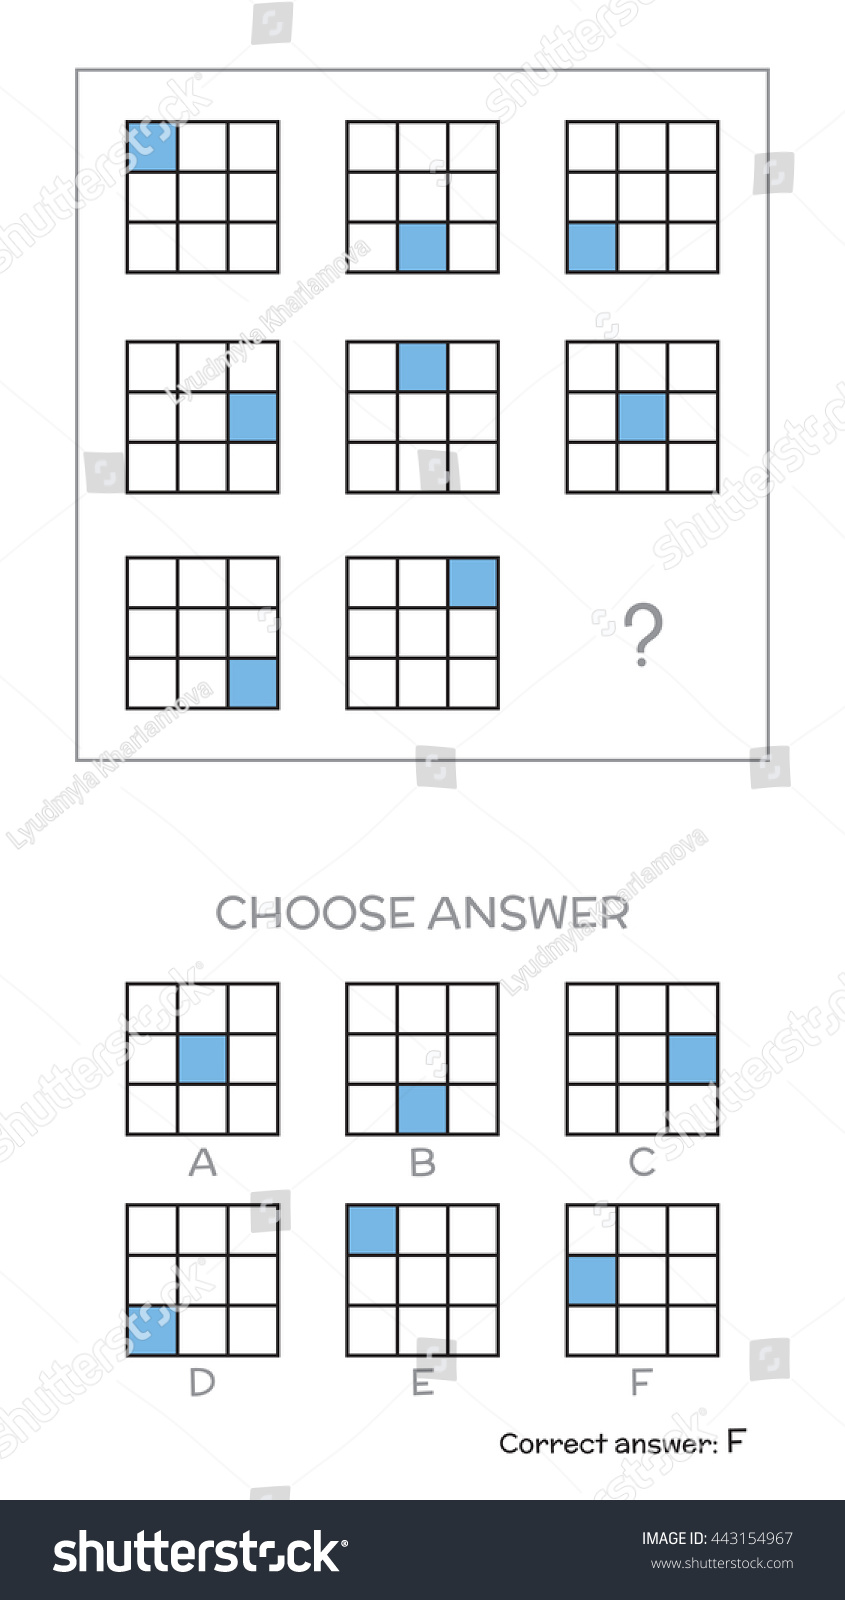 how to choose a major test